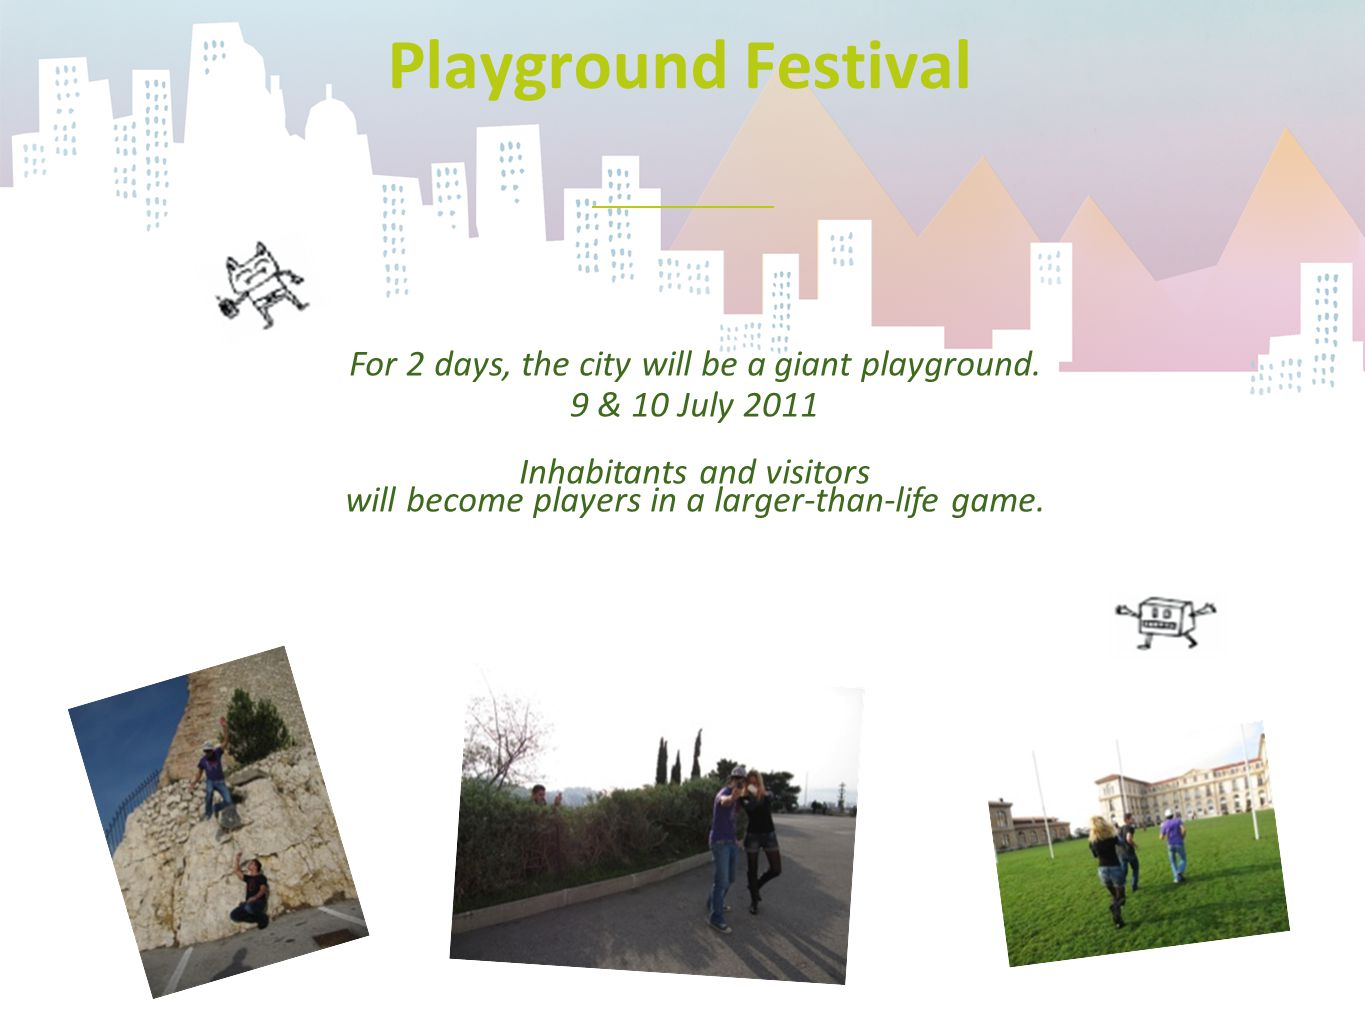 Playground Festival For 2 days, the city will be a giant playground. 9 & 10 July 2011 Inhabitants and visitors will become players in a larger-than-li